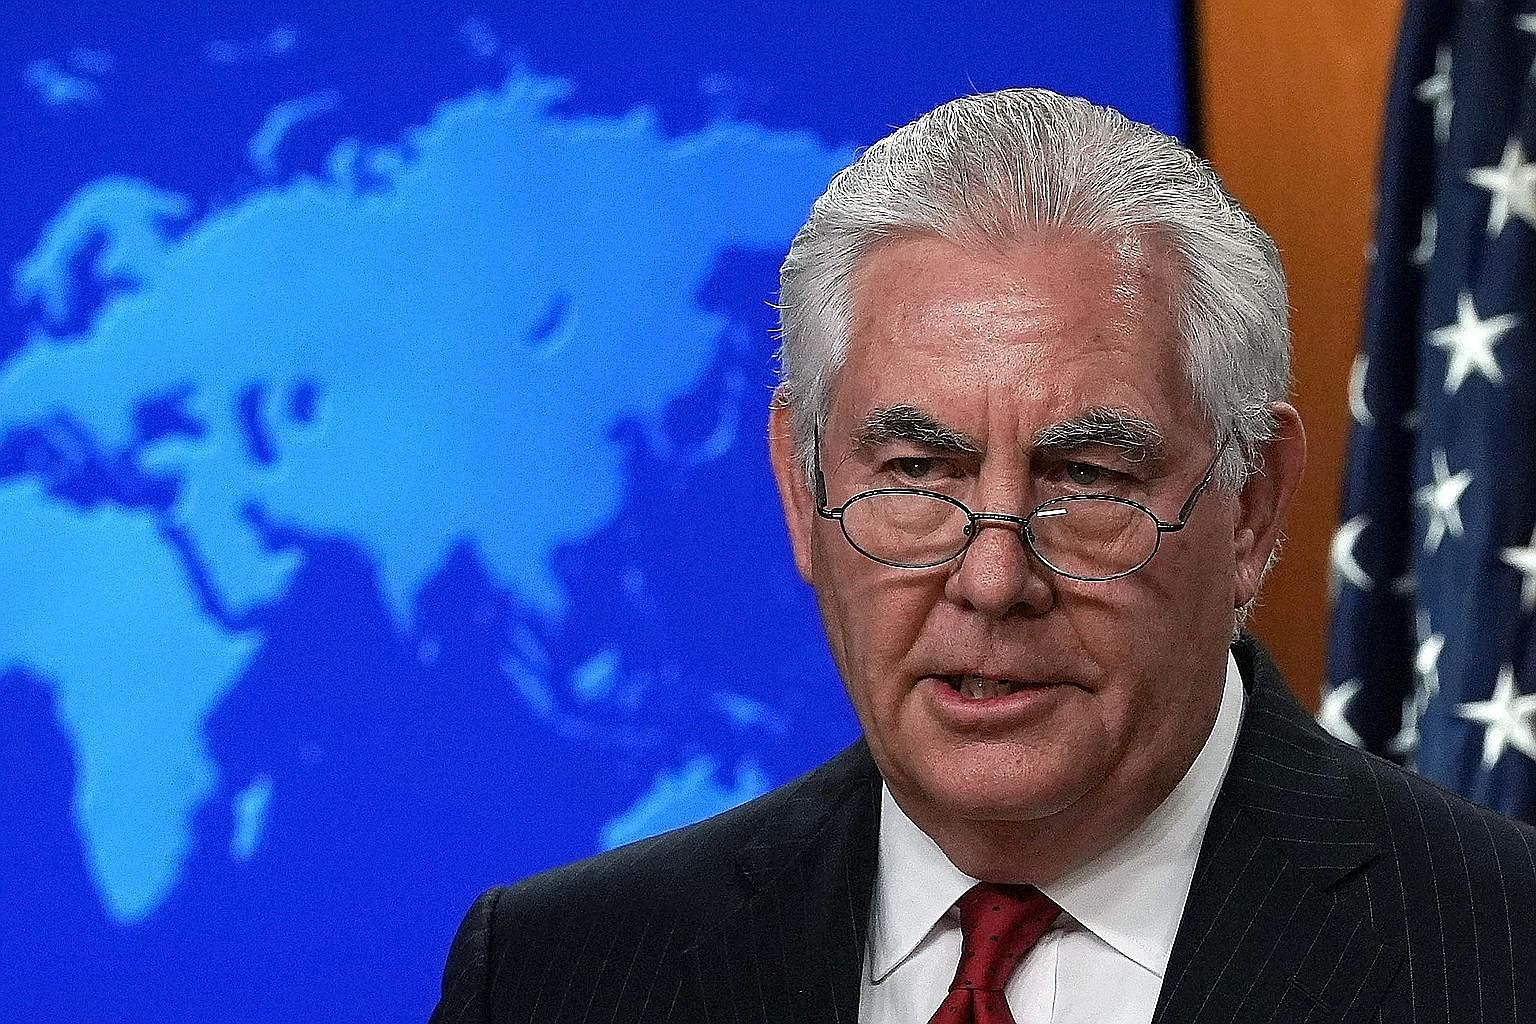 In his farewell remarks on Tuesday, outgoing US Secretary of State Rex Tillerson suggested that the prospect of talks with Mr Kim Jong Un was made possible by the hard work of his State Department and allies.